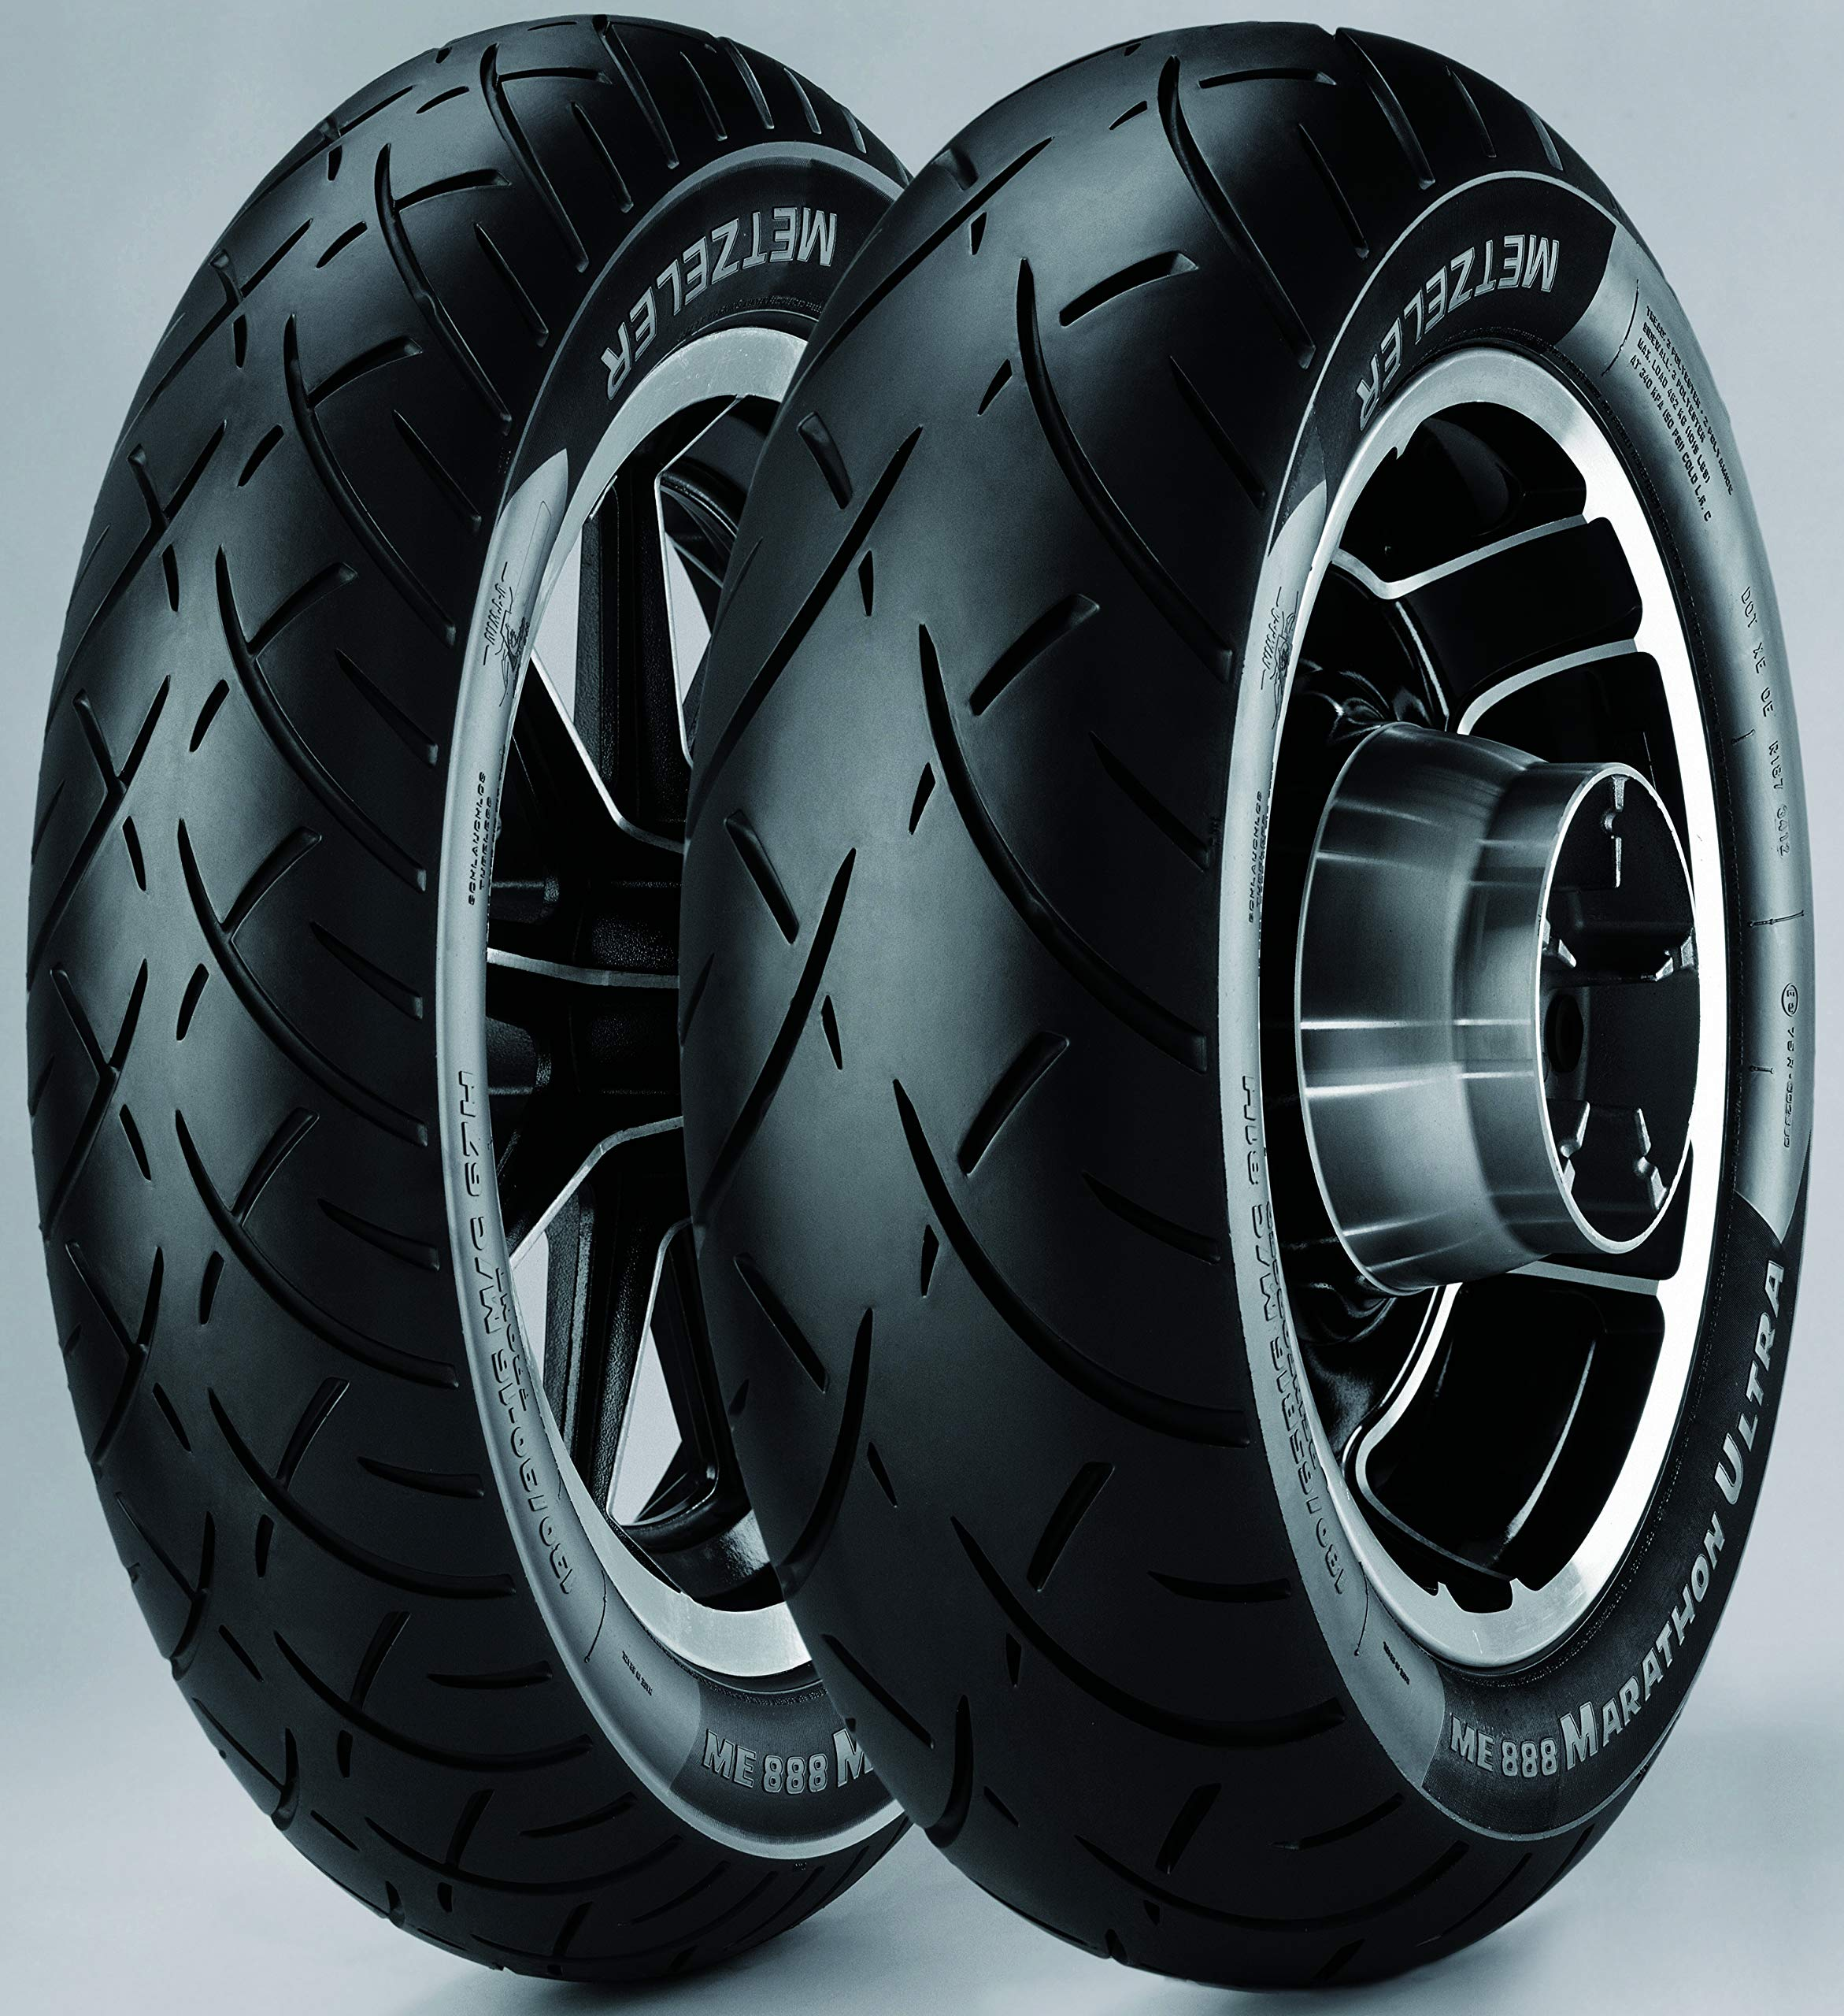 Metzeler 2318900 ME888 Marathon Ultra Rear Tire - MU85B16, Load Rating: 77, Position: Rear, Rim Size: 16, Speed Rating: H, Tire Application: Cruiser, Tire Size: MU85-16, Tire Type: Street by Metzeler